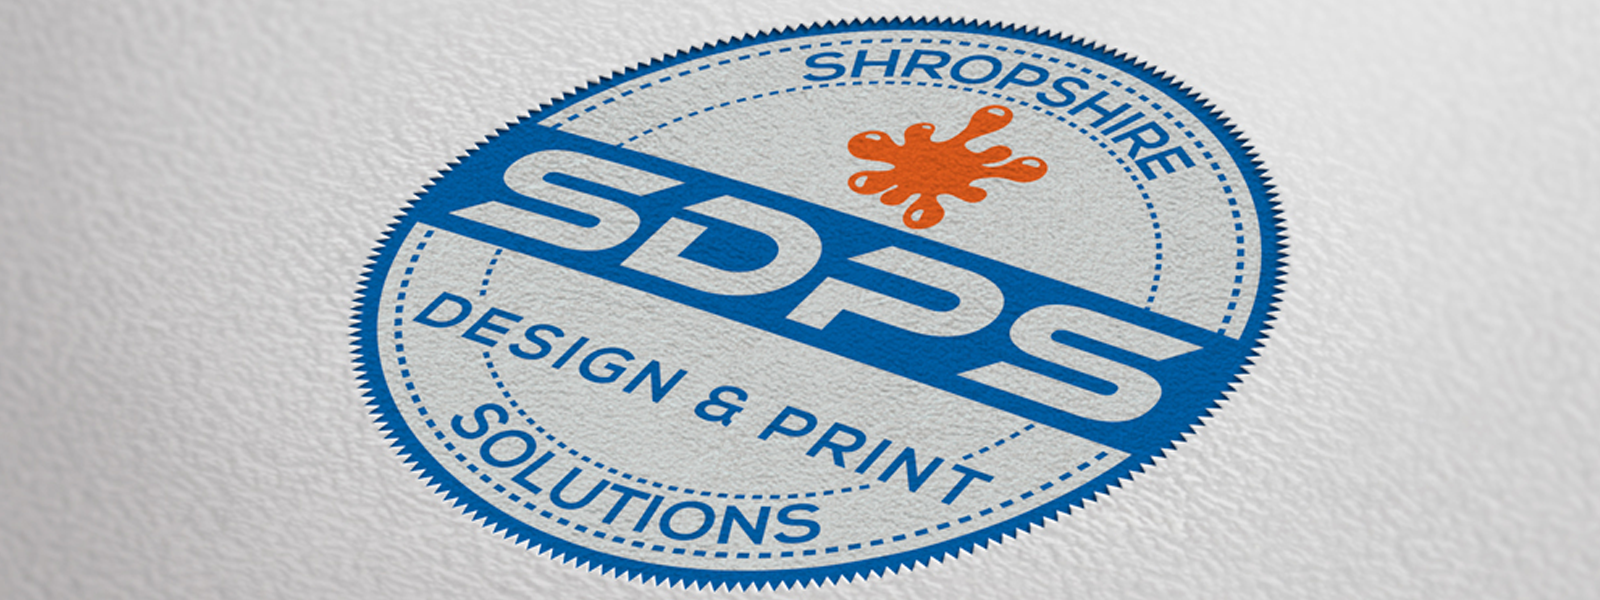 Design and print in Oswestry, Shropshire